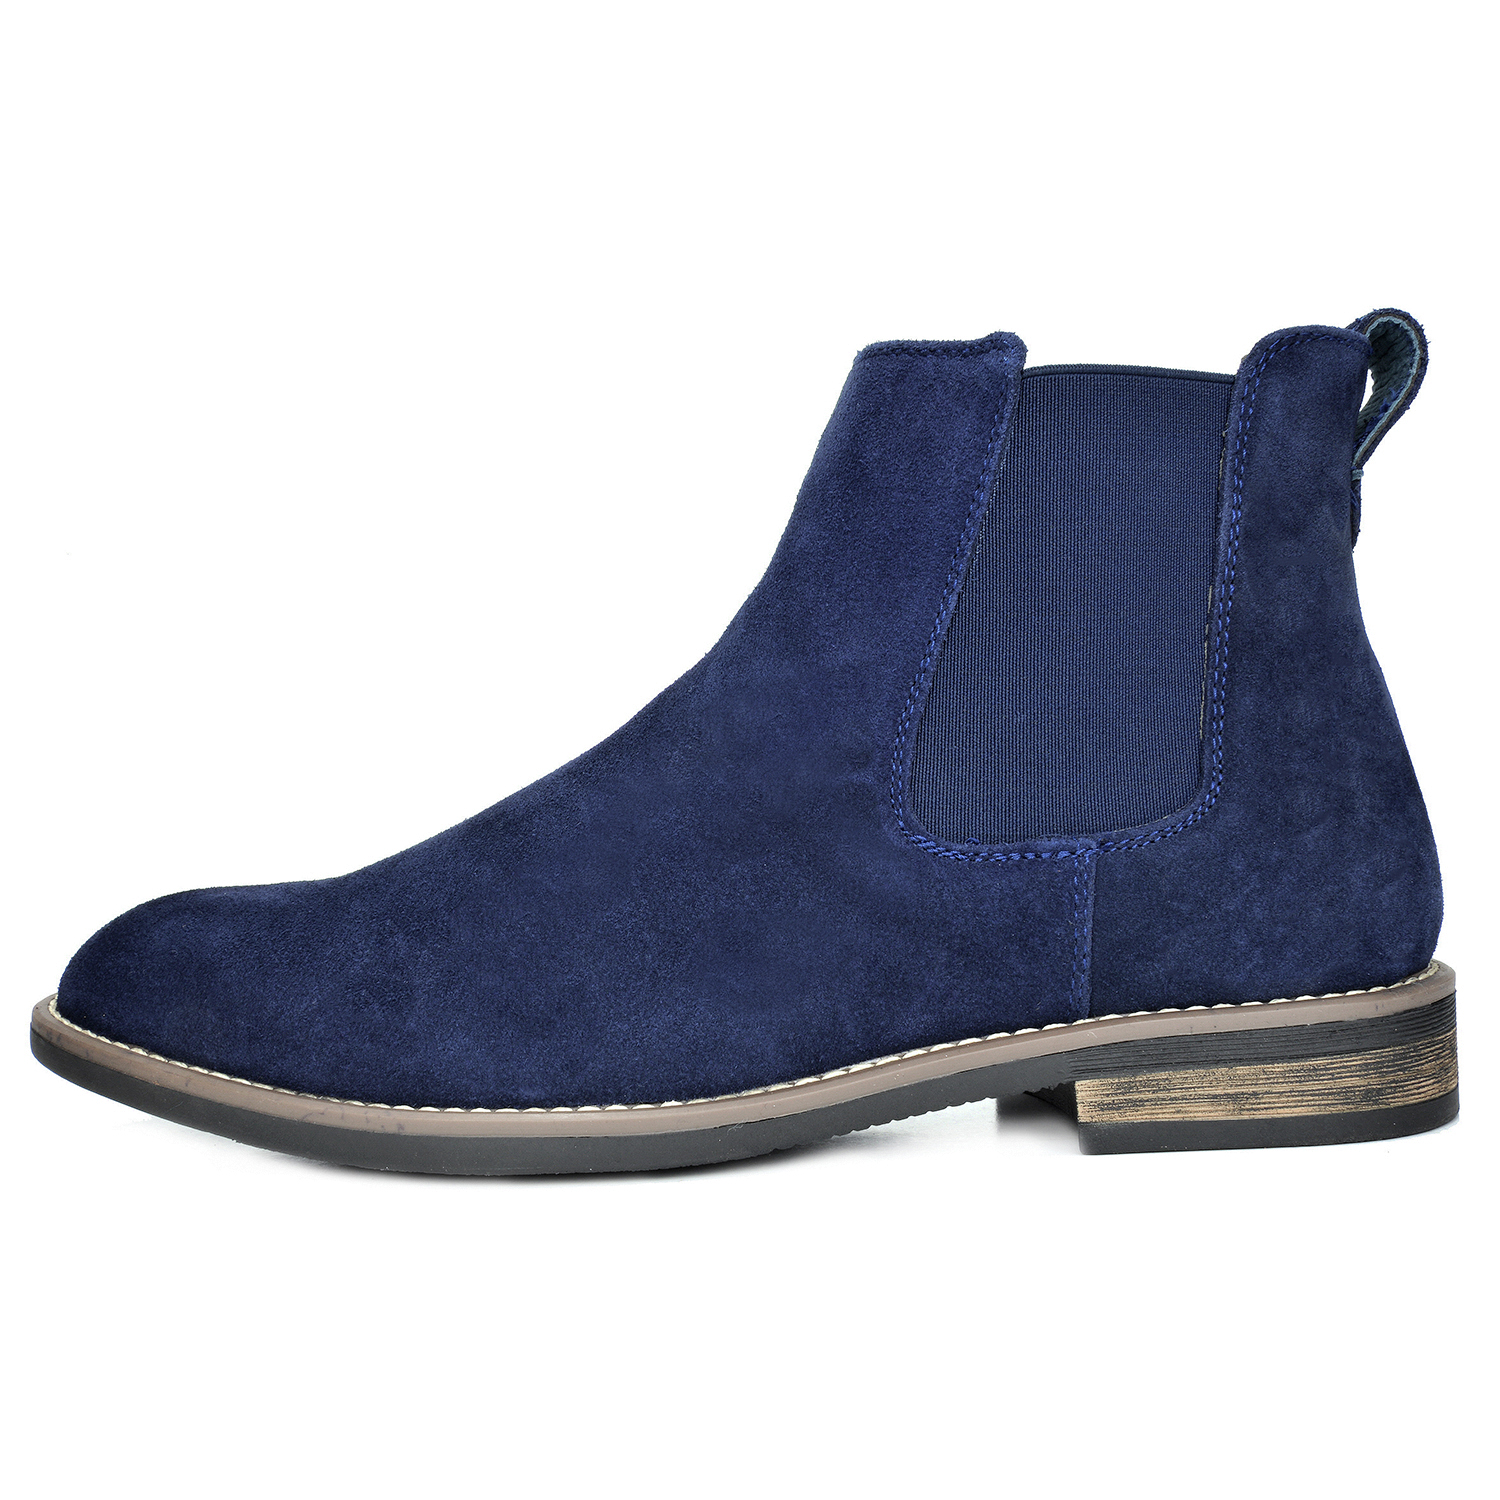 BRUNO-MARC-Men-URBAN-Suede-Leather-Chelsea-Chukka-Dress-Ankle-Boots-Casual-Shoes thumbnail 36